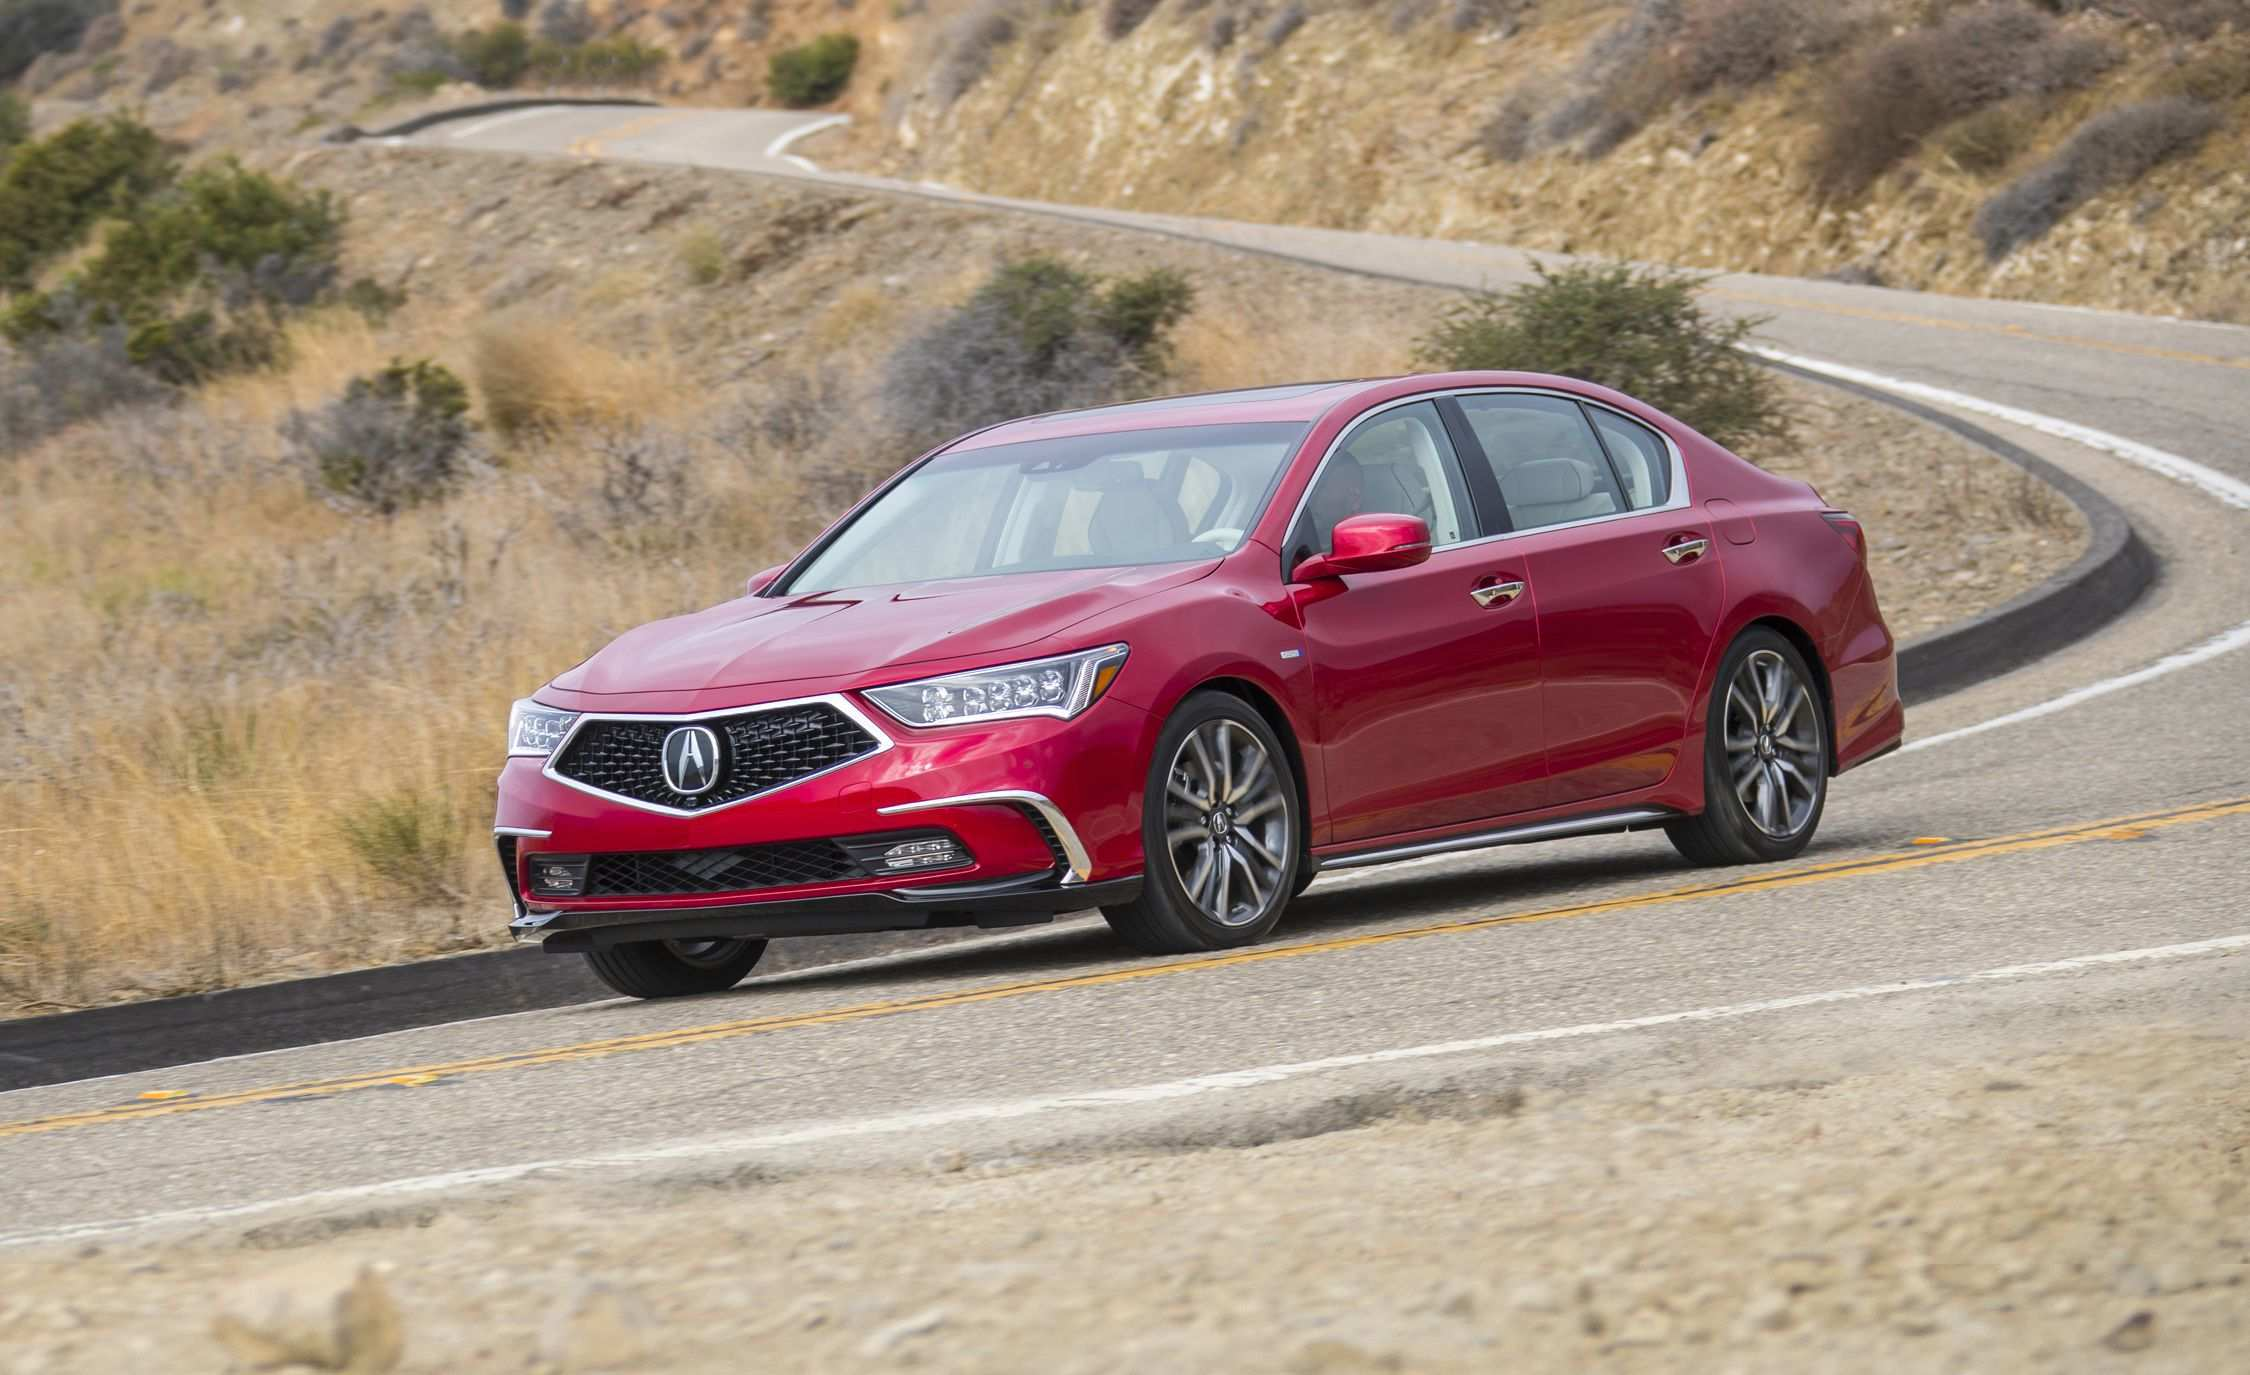 80 All New New 2019 Acura Rlx Sport Hybrid Redesign Price And Review Configurations with New 2019 Acura Rlx Sport Hybrid Redesign Price And Review